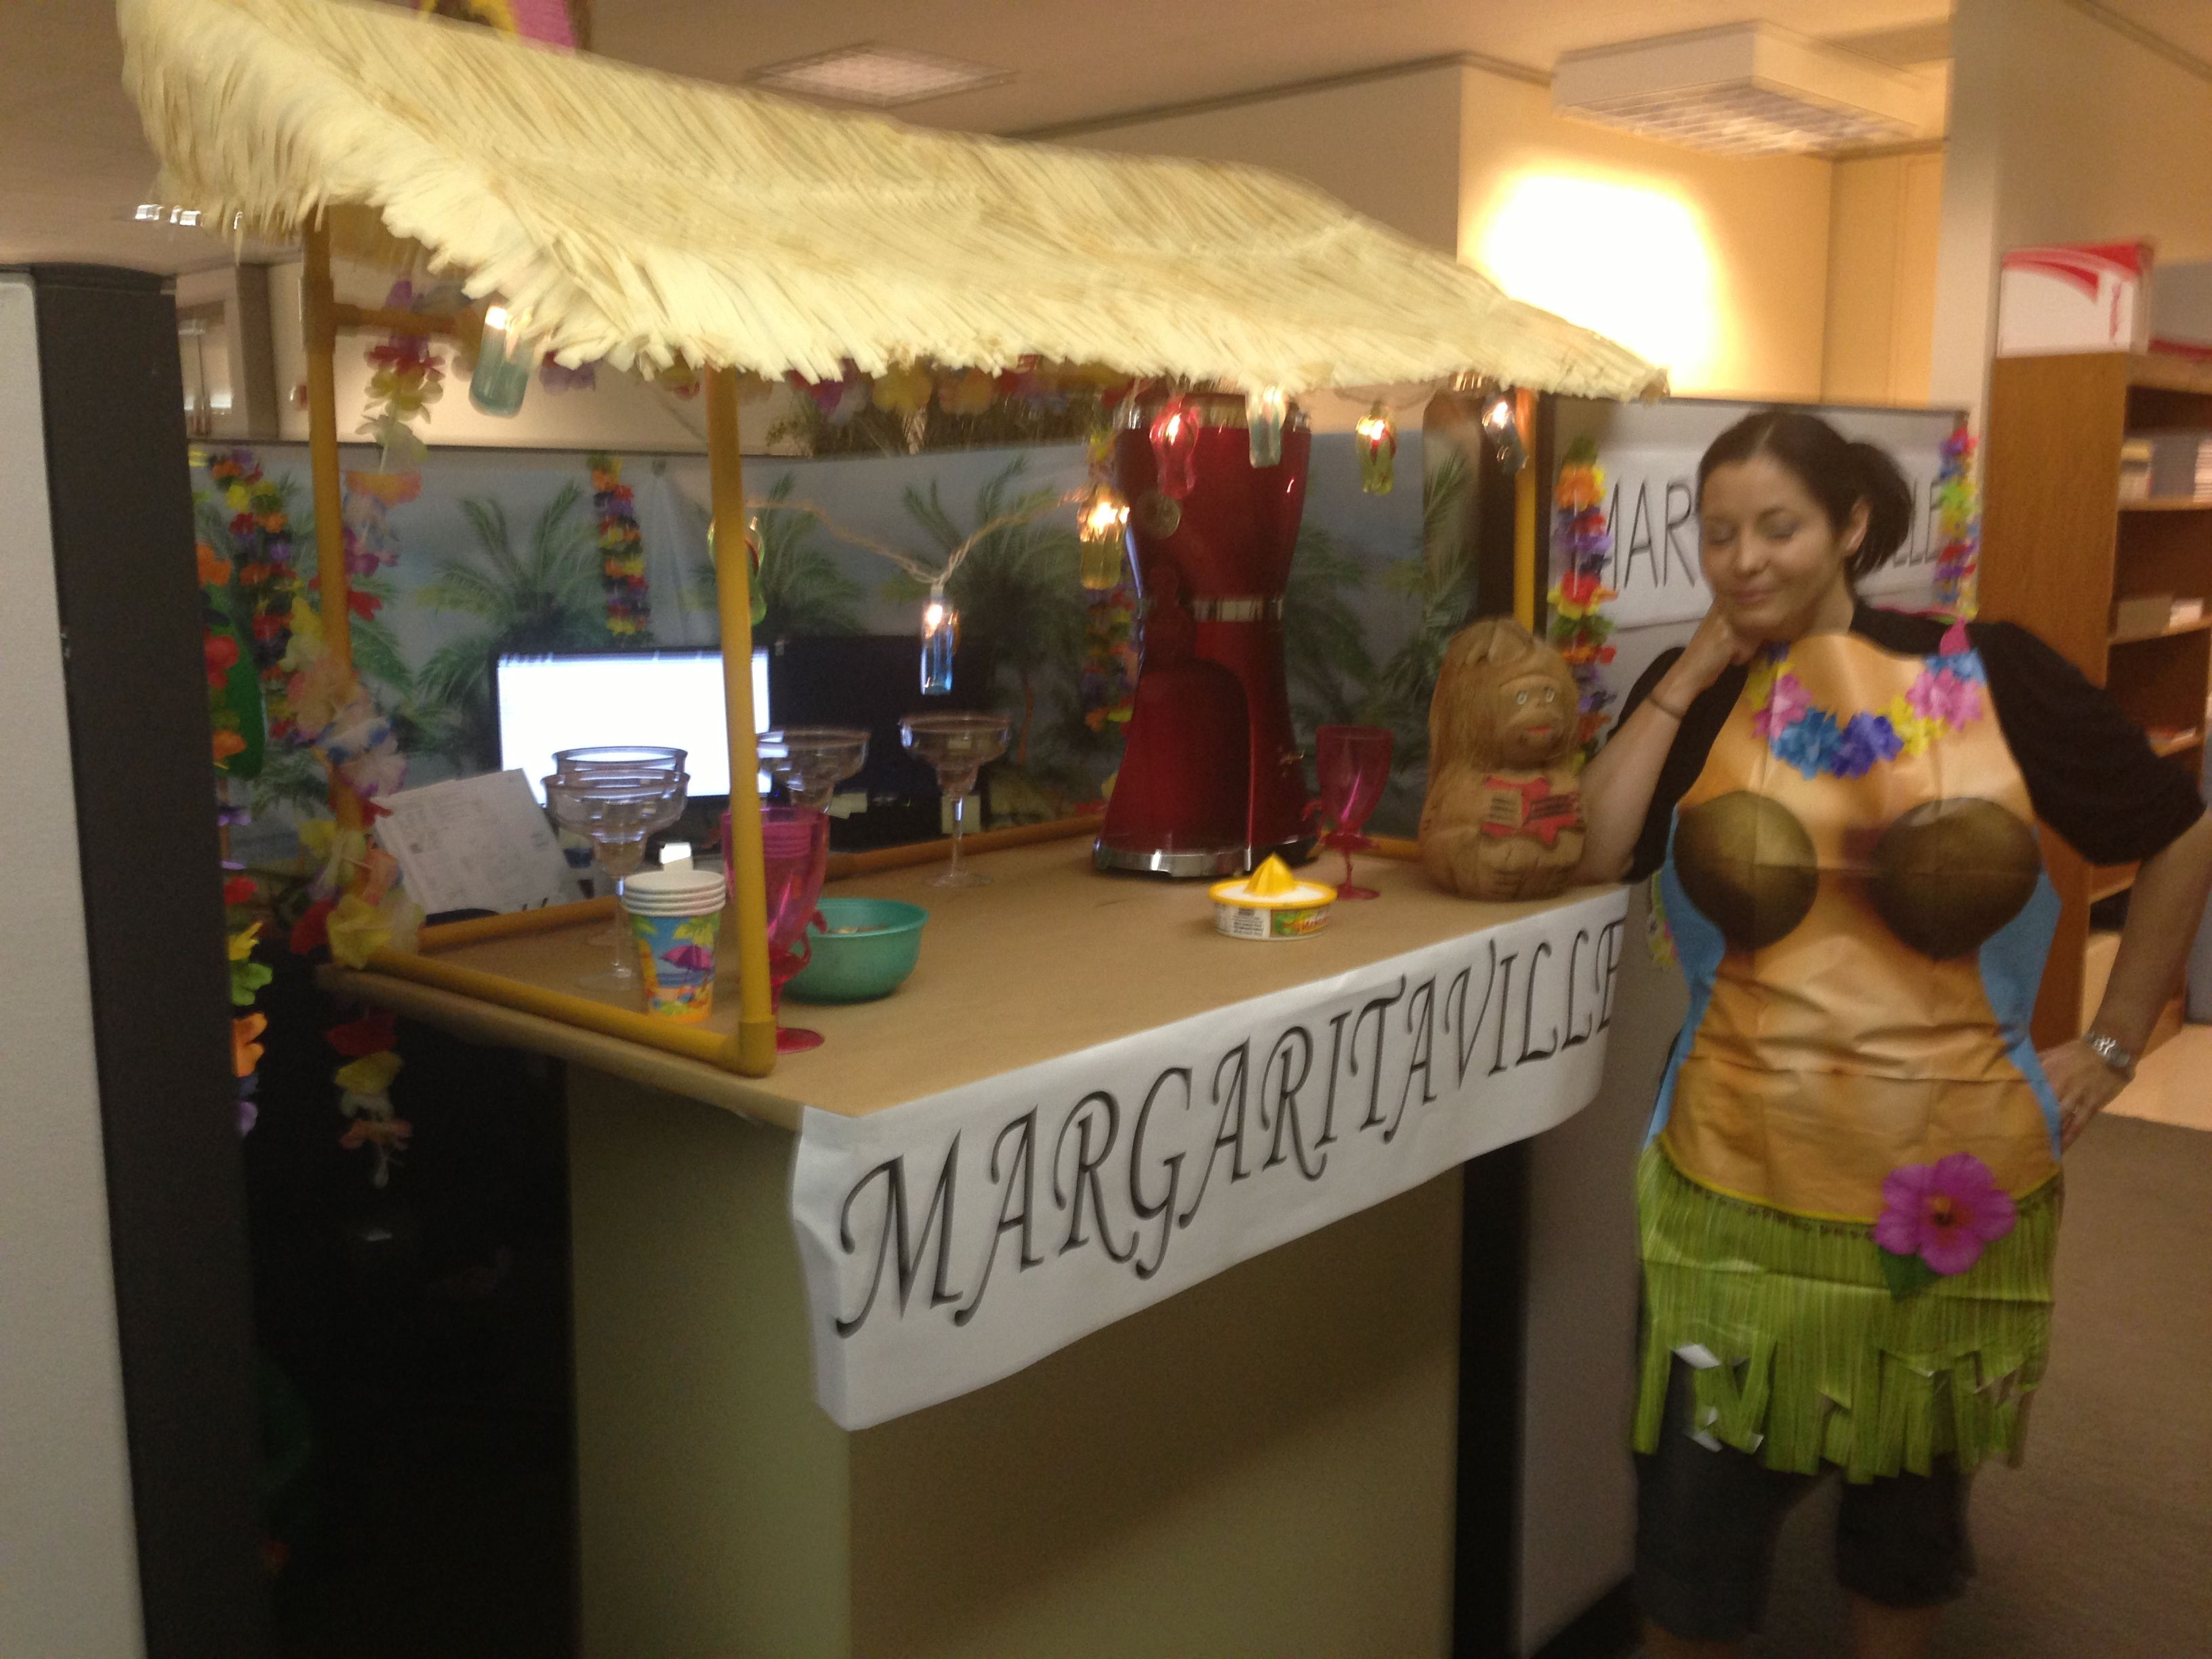 cubicle decoration in office. MargaritaVille Themed Cubicle Decoration In Office E